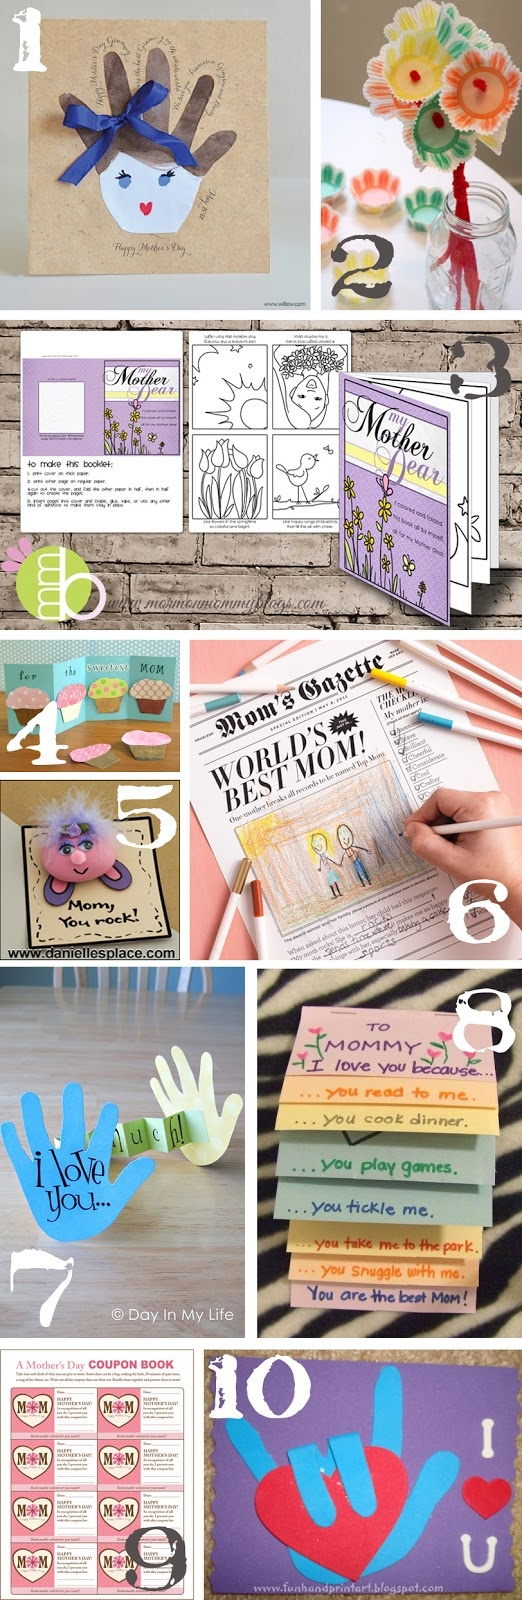 Craft ideas for Mother's Day - good for groups - teachers